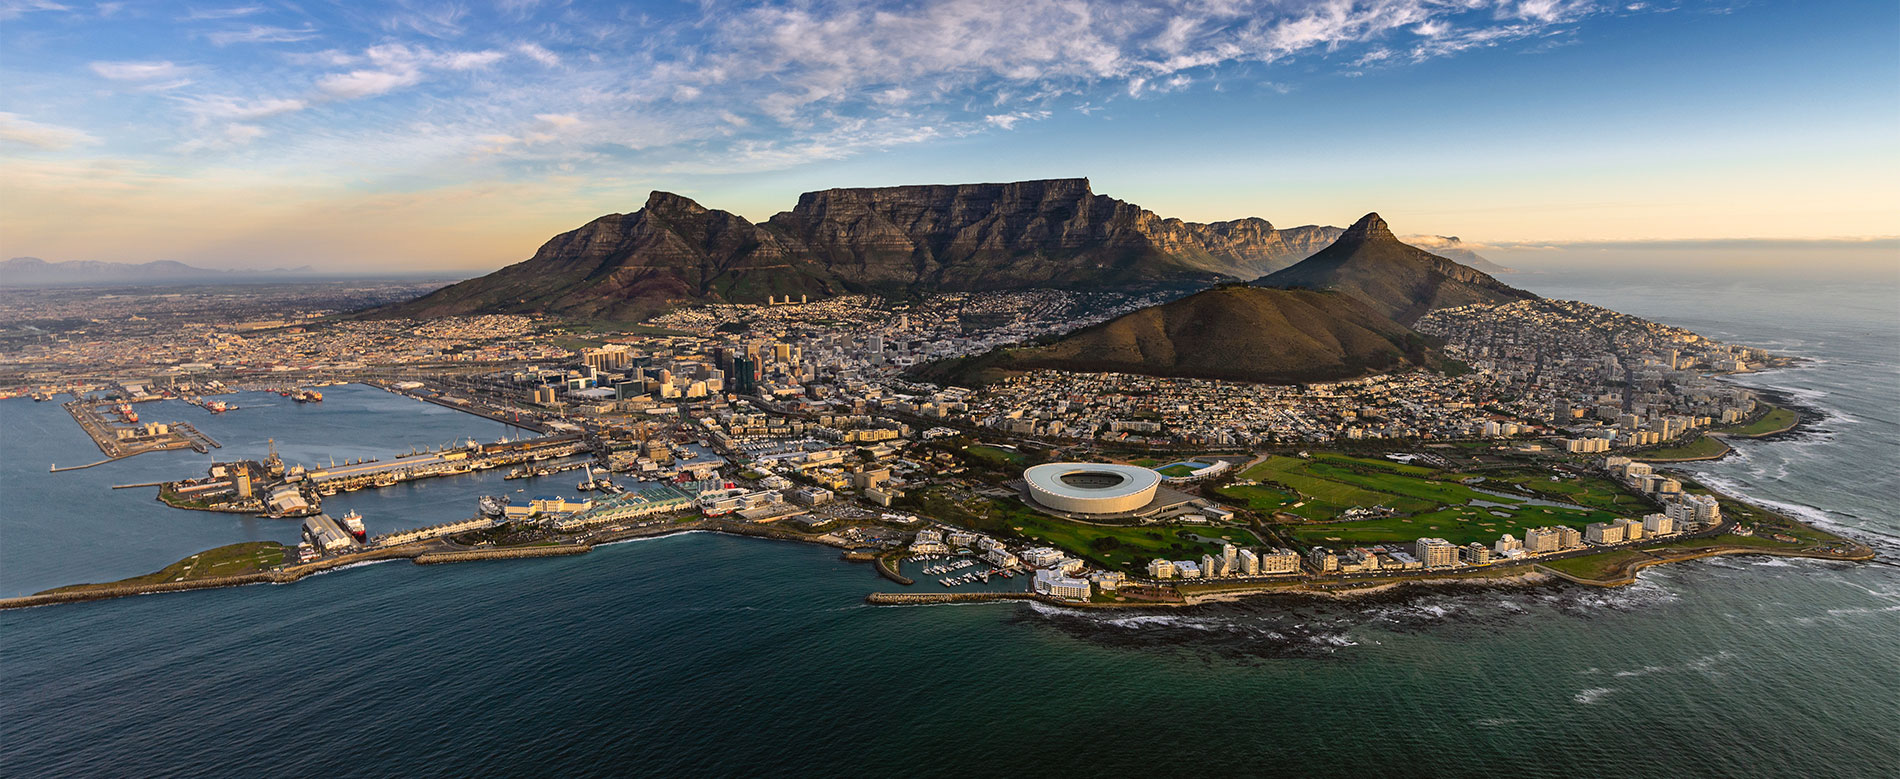 an image of table mountain surrounded by the ocean